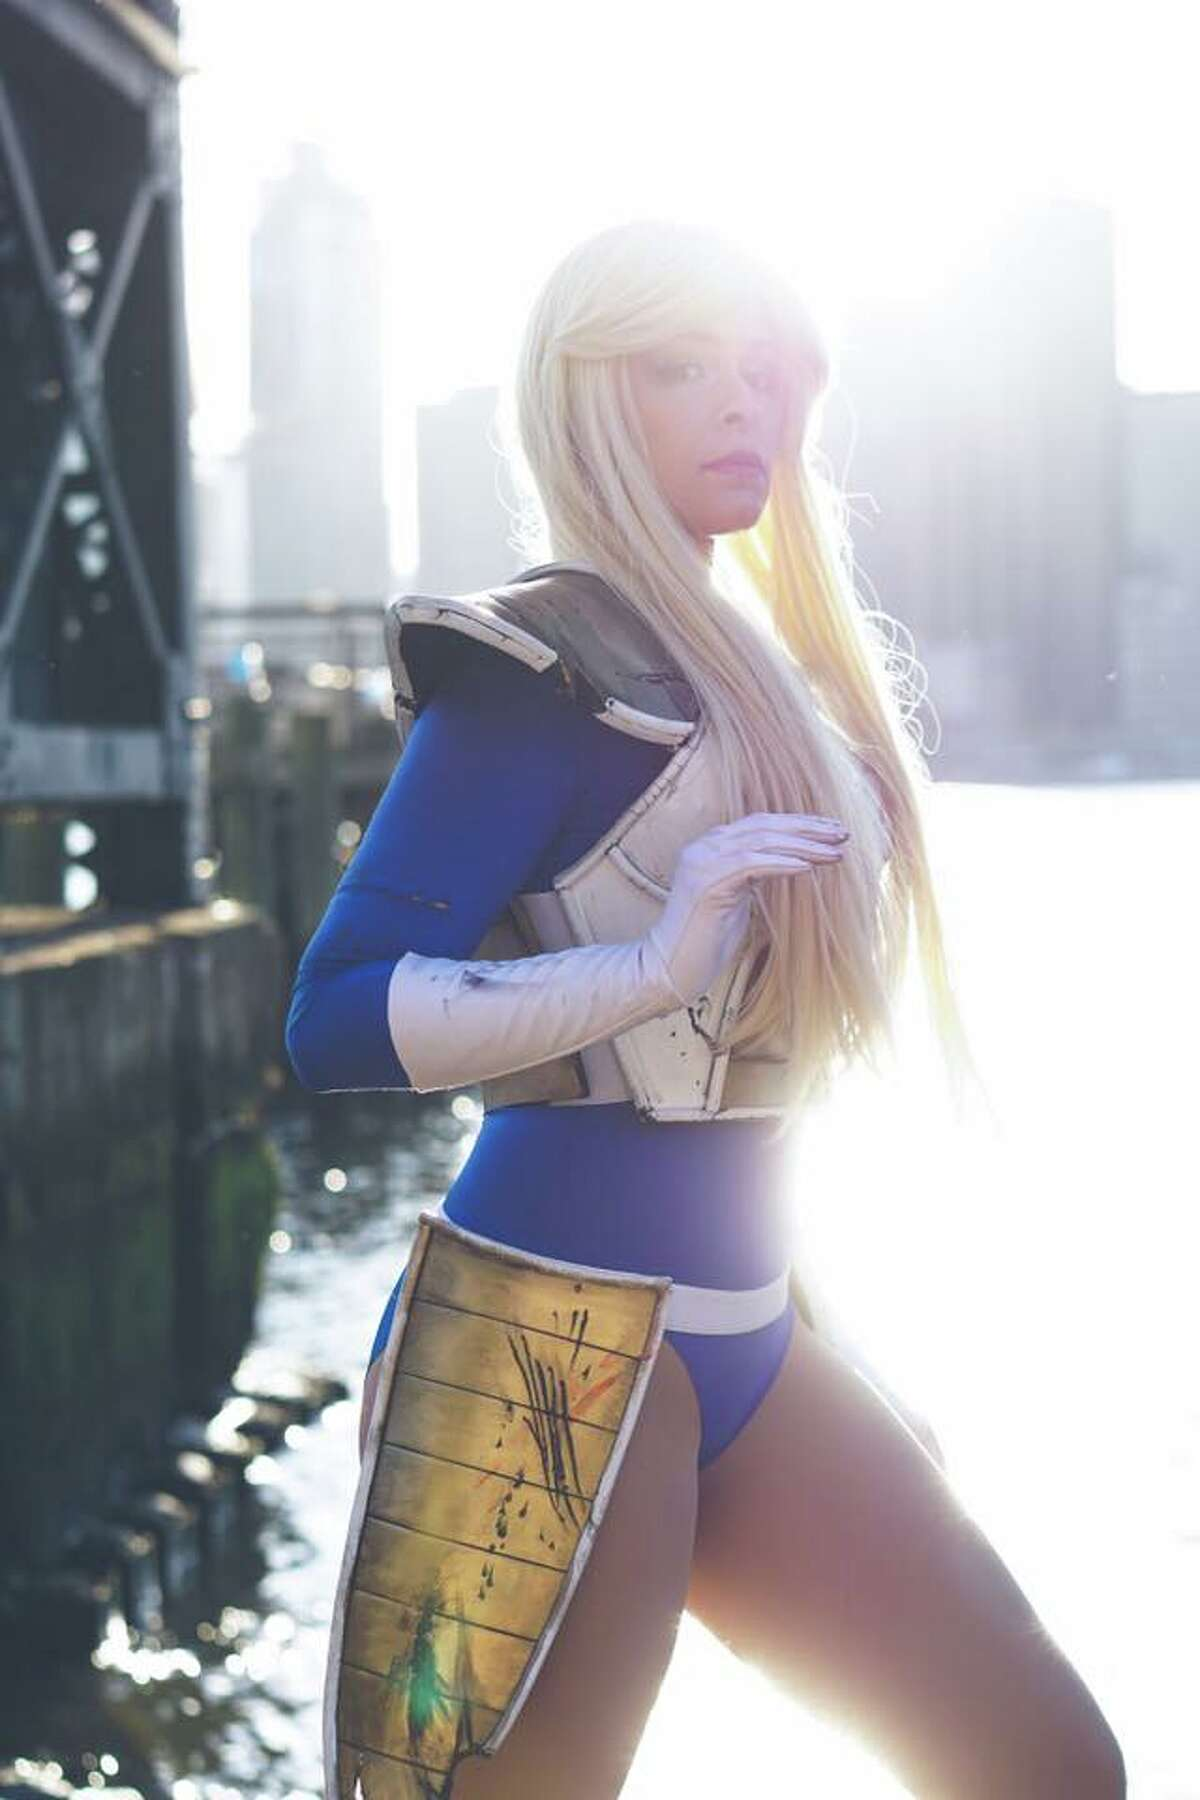 Becka Noel will be one of eight confirmed cosplayers attending Comicpalooza May 25 at Houston's George R. Brown Convention Center.